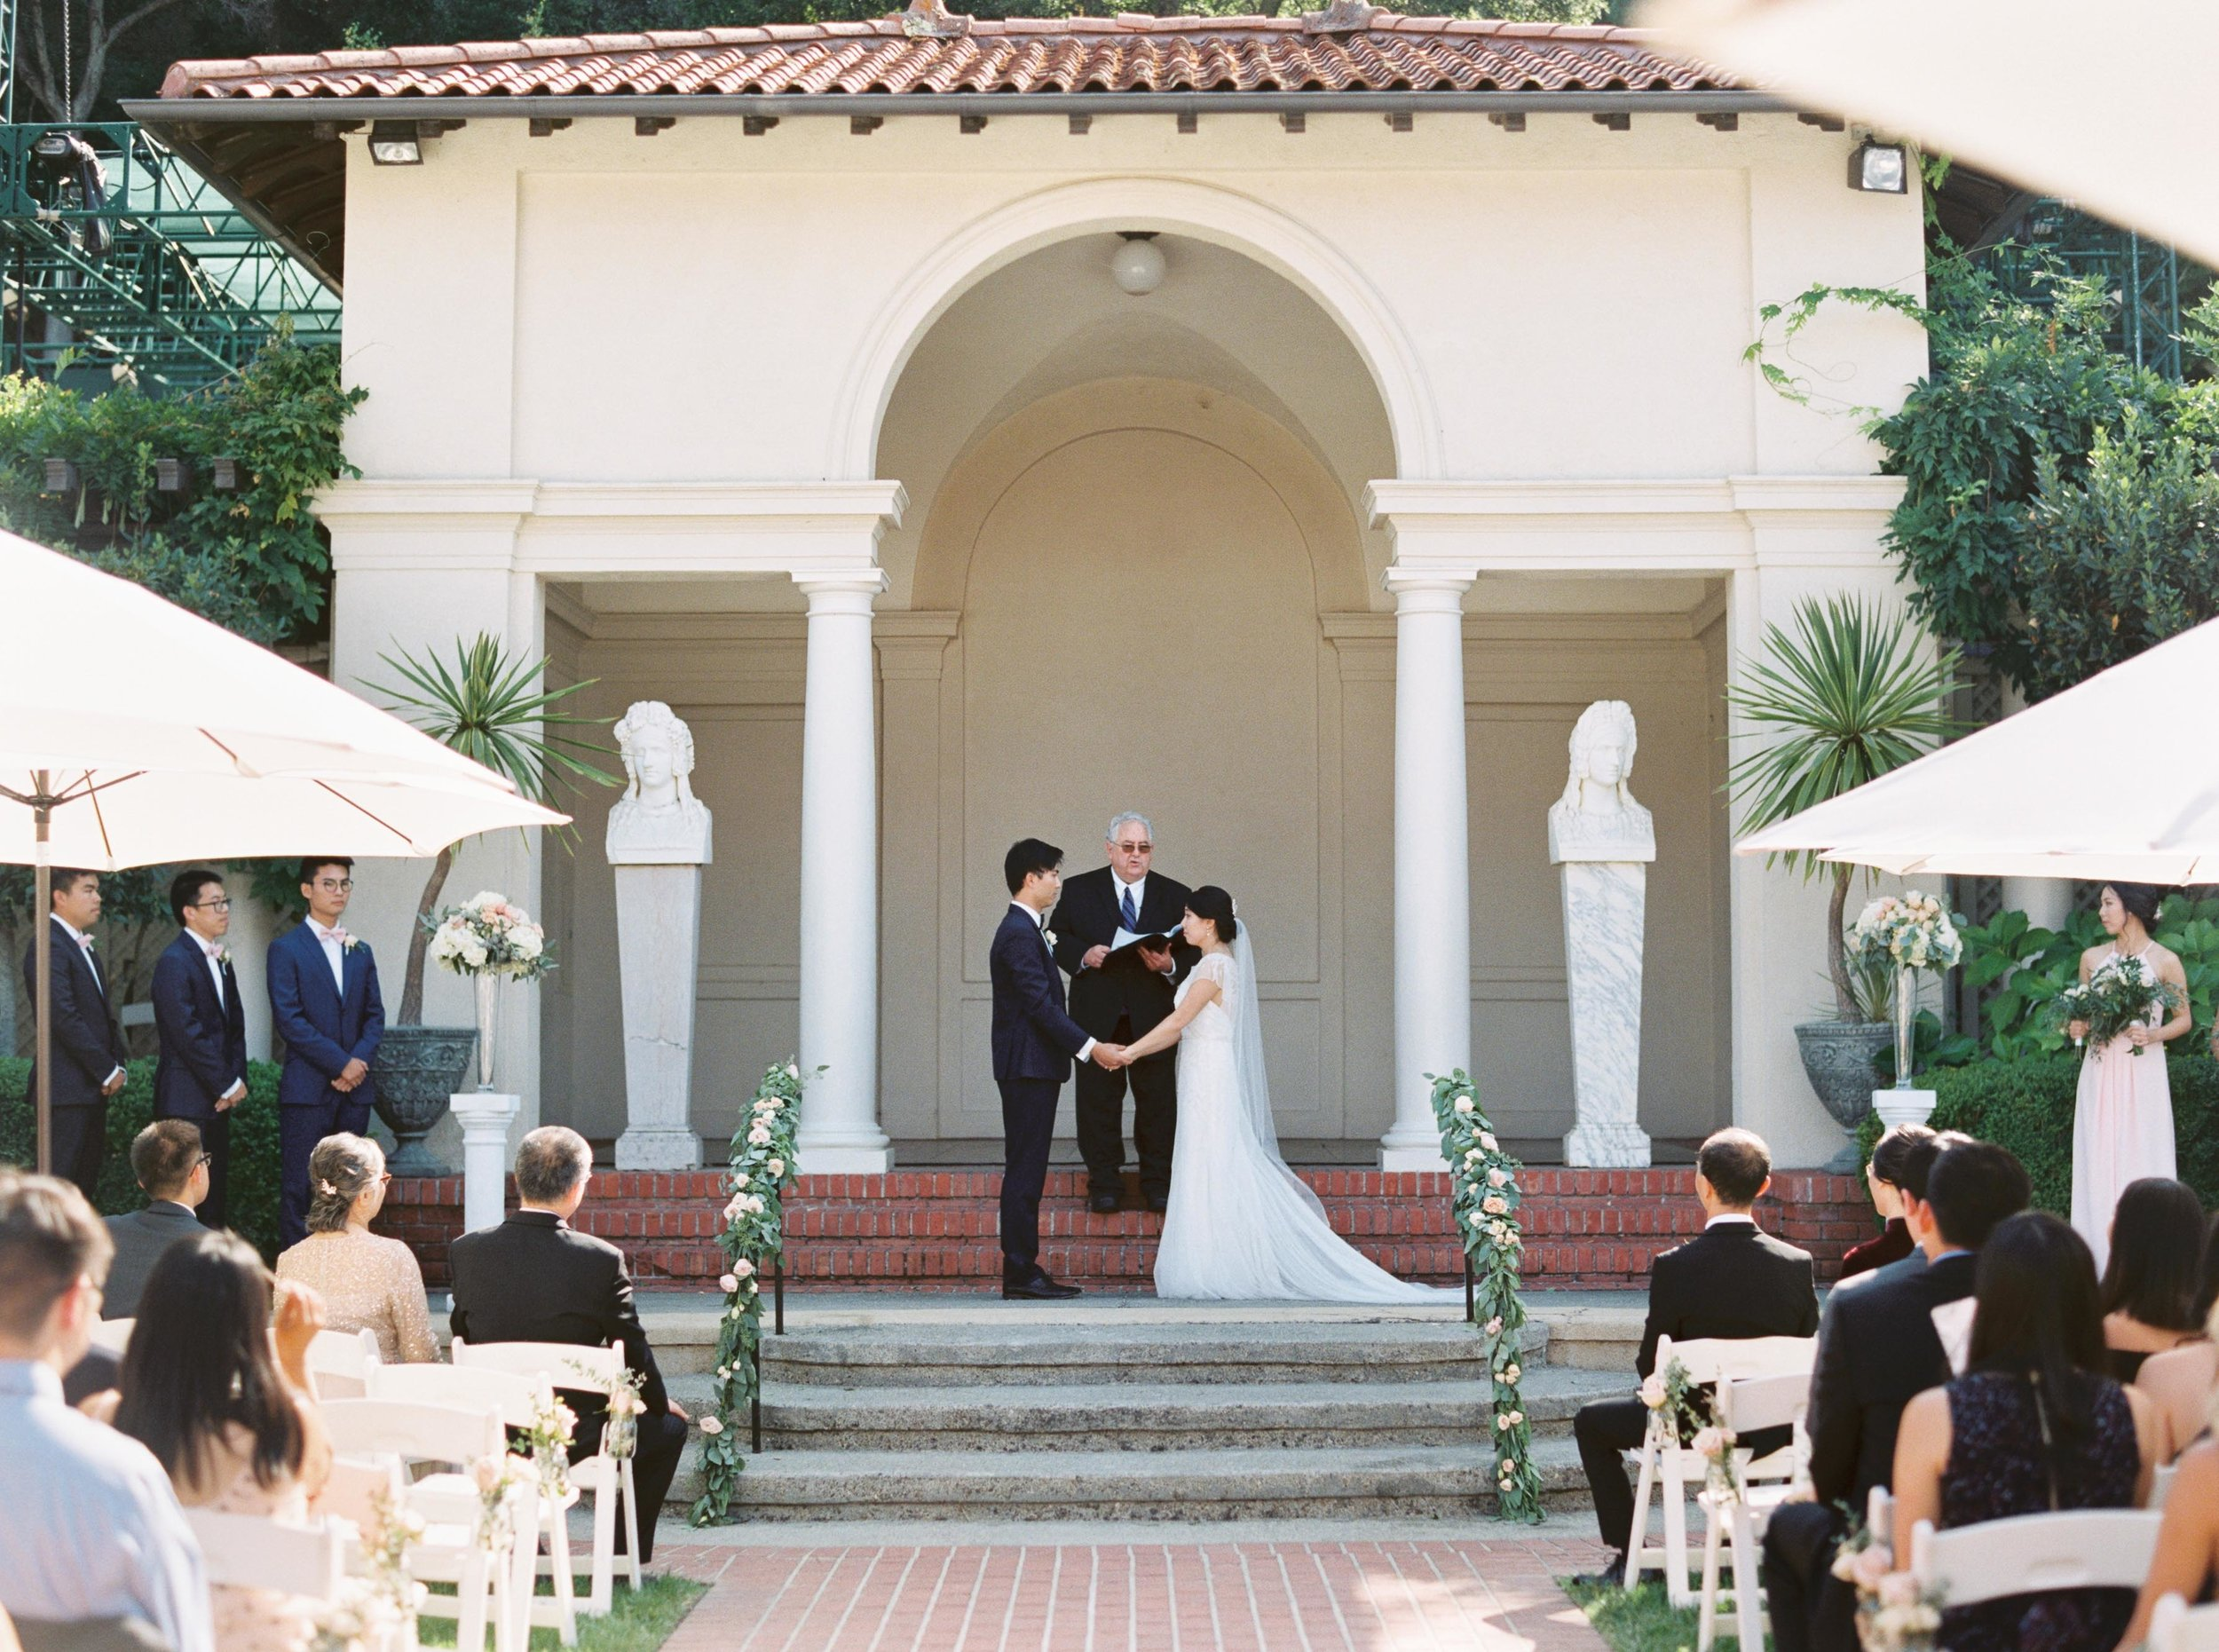 Villa_Montalvo_Wedding_Photographer_Videographer_San_Francisco102.jpg